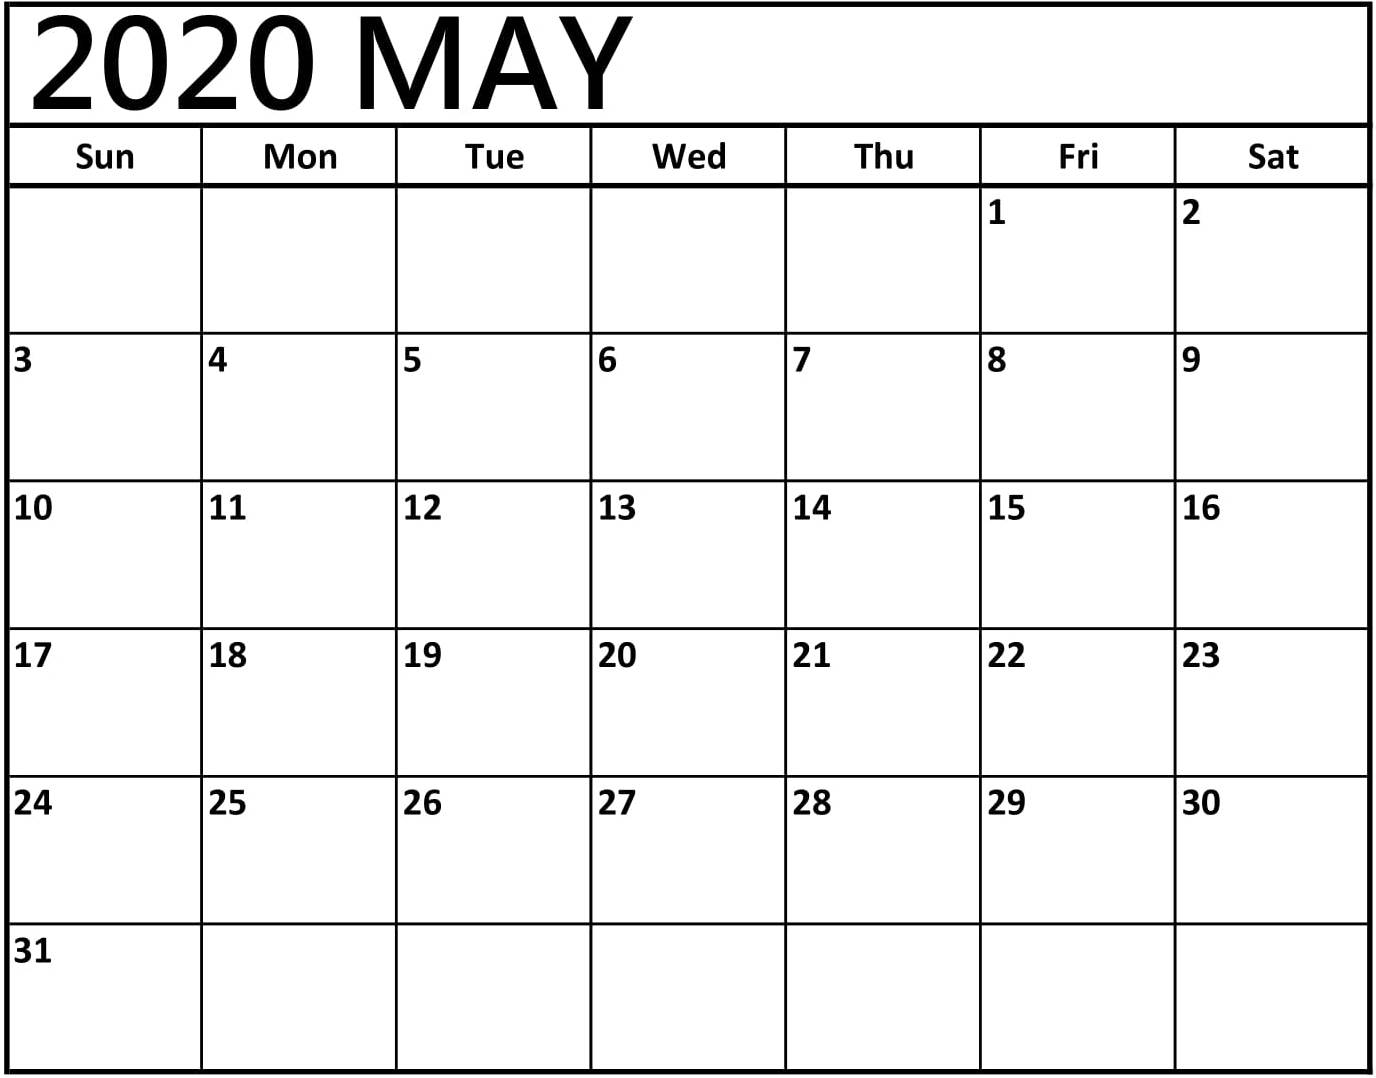 Calendar For May 2020 Template - 2019 Calendars For Students